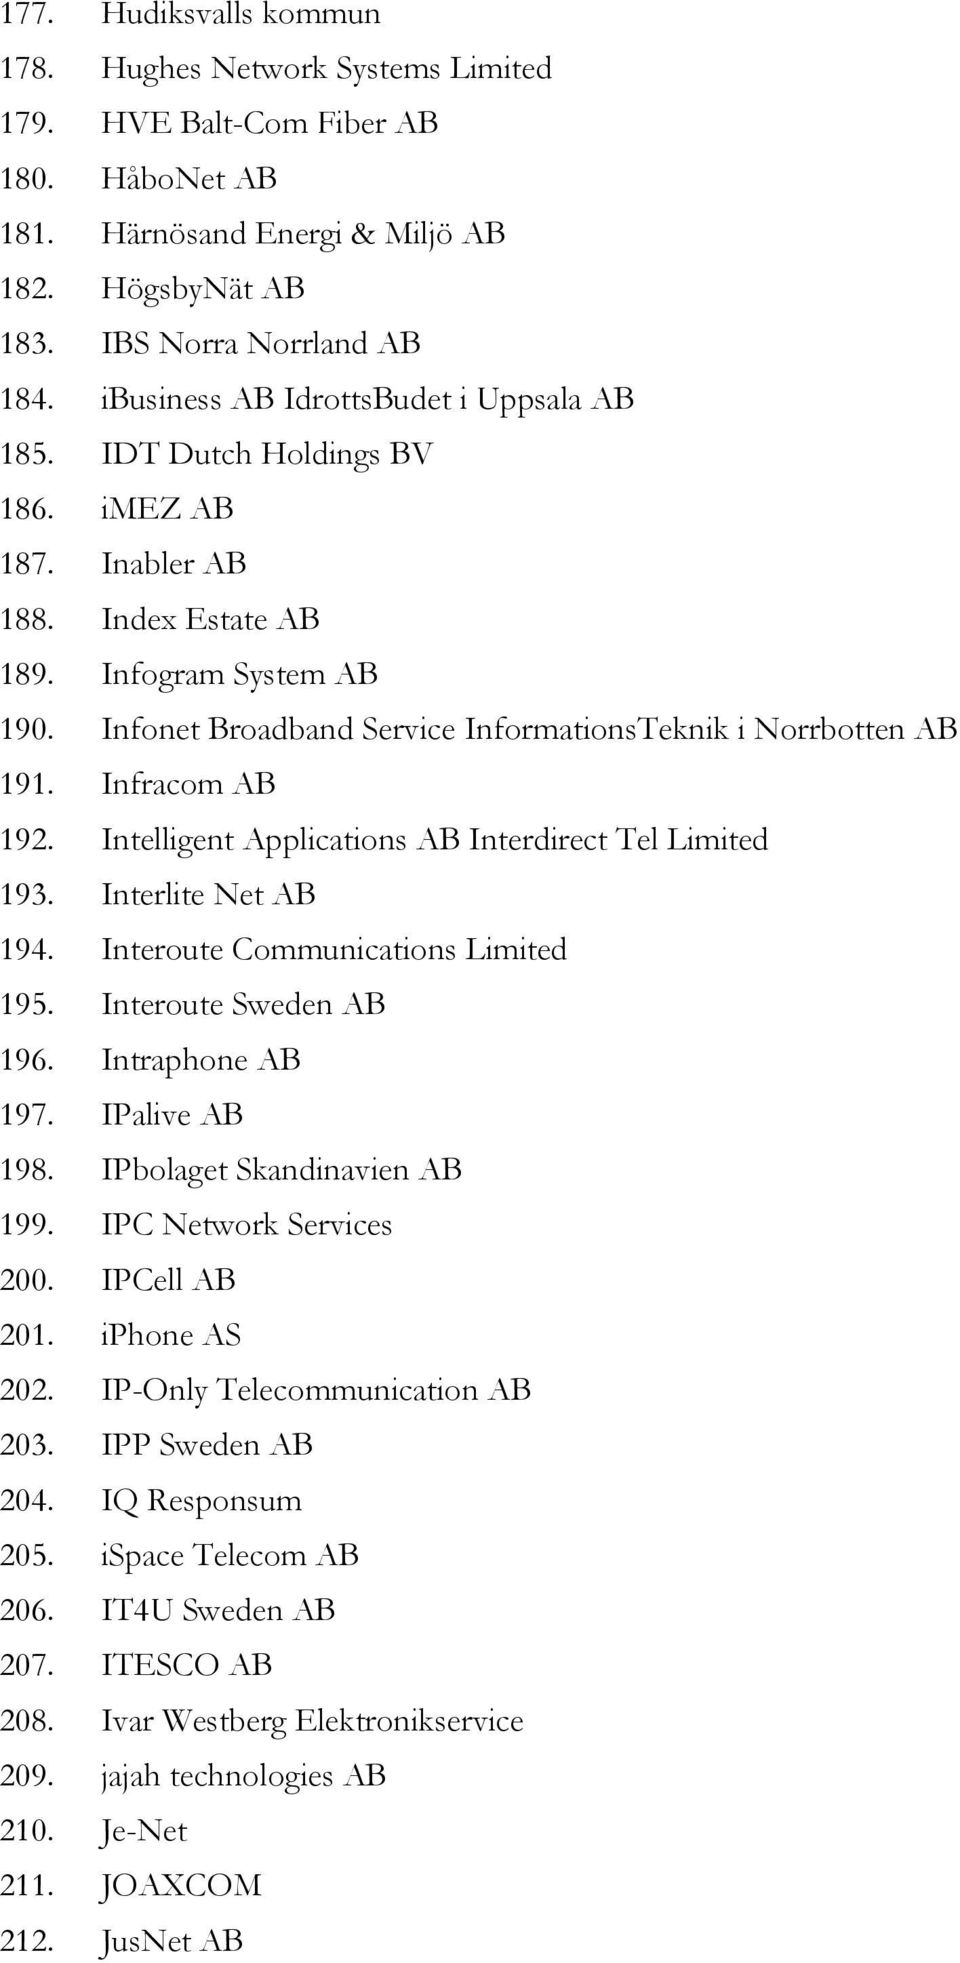 Infonet Broadband Service InformationsTeknik i Norrbotten AB 191. Infracom AB 192. Intelligent Applications AB Interdirect Tel Limited 193. Interlite Net AB 194. Interoute Communications Limited 195.